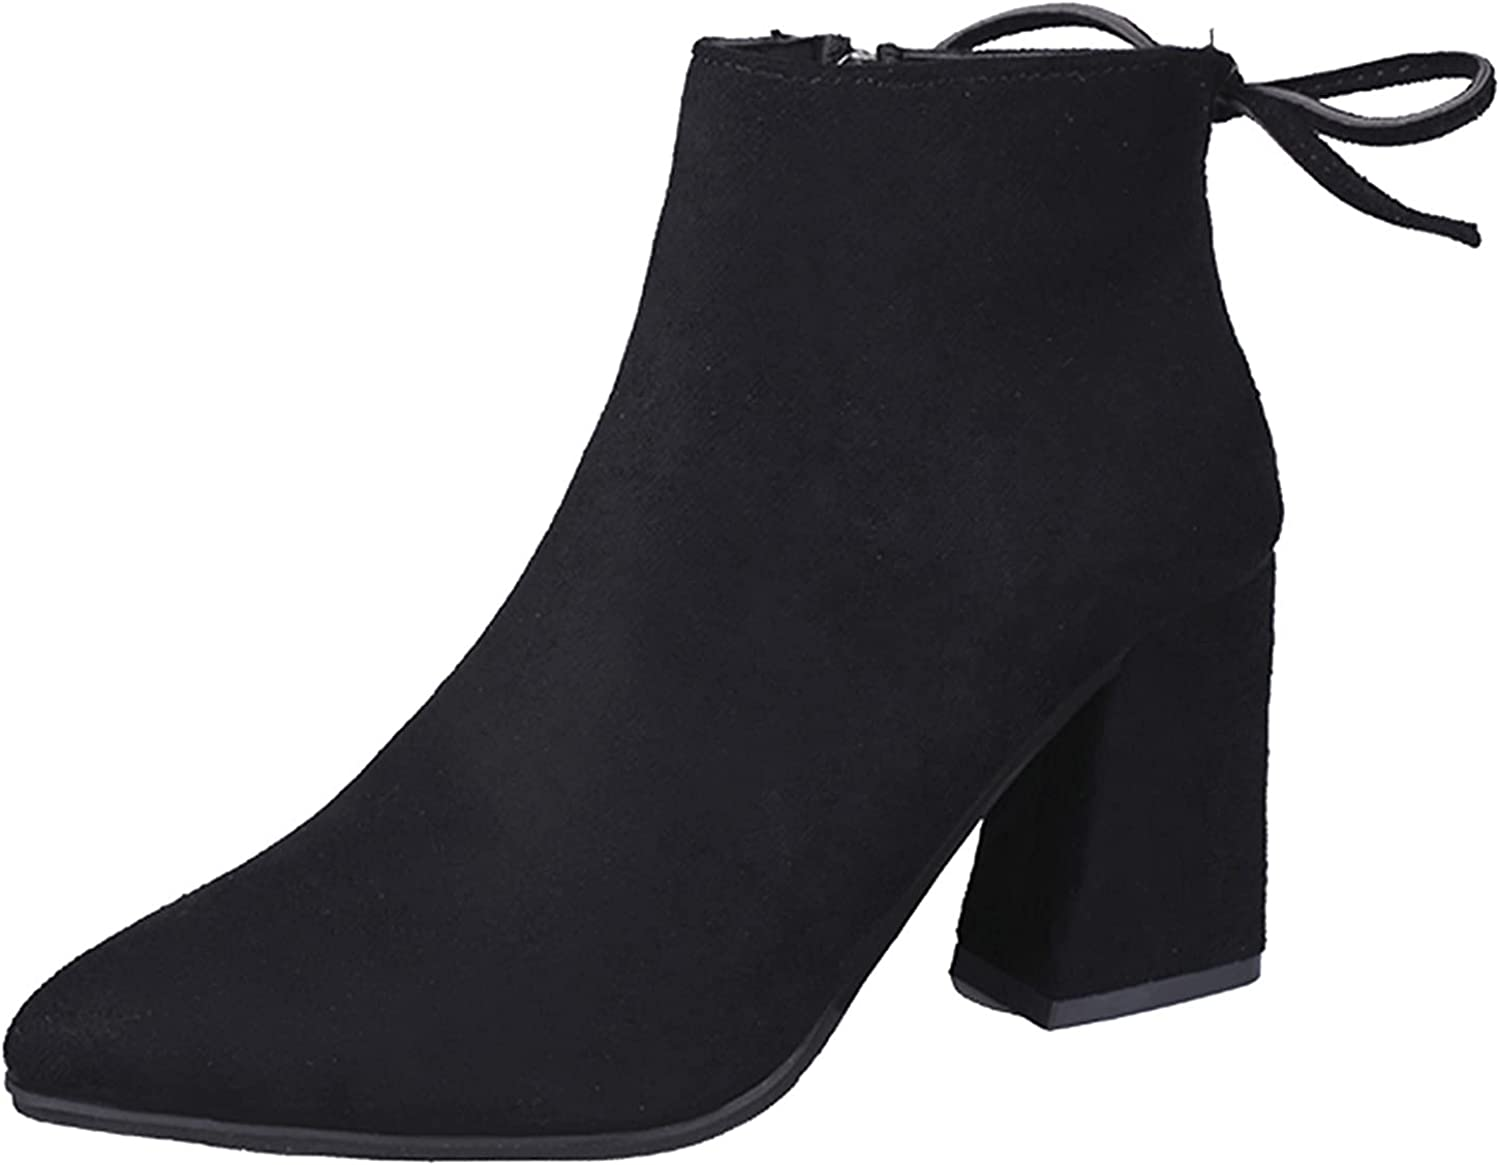 Women's Fashion Ankle Bootie Block Heel Suede Solid Color Pointe